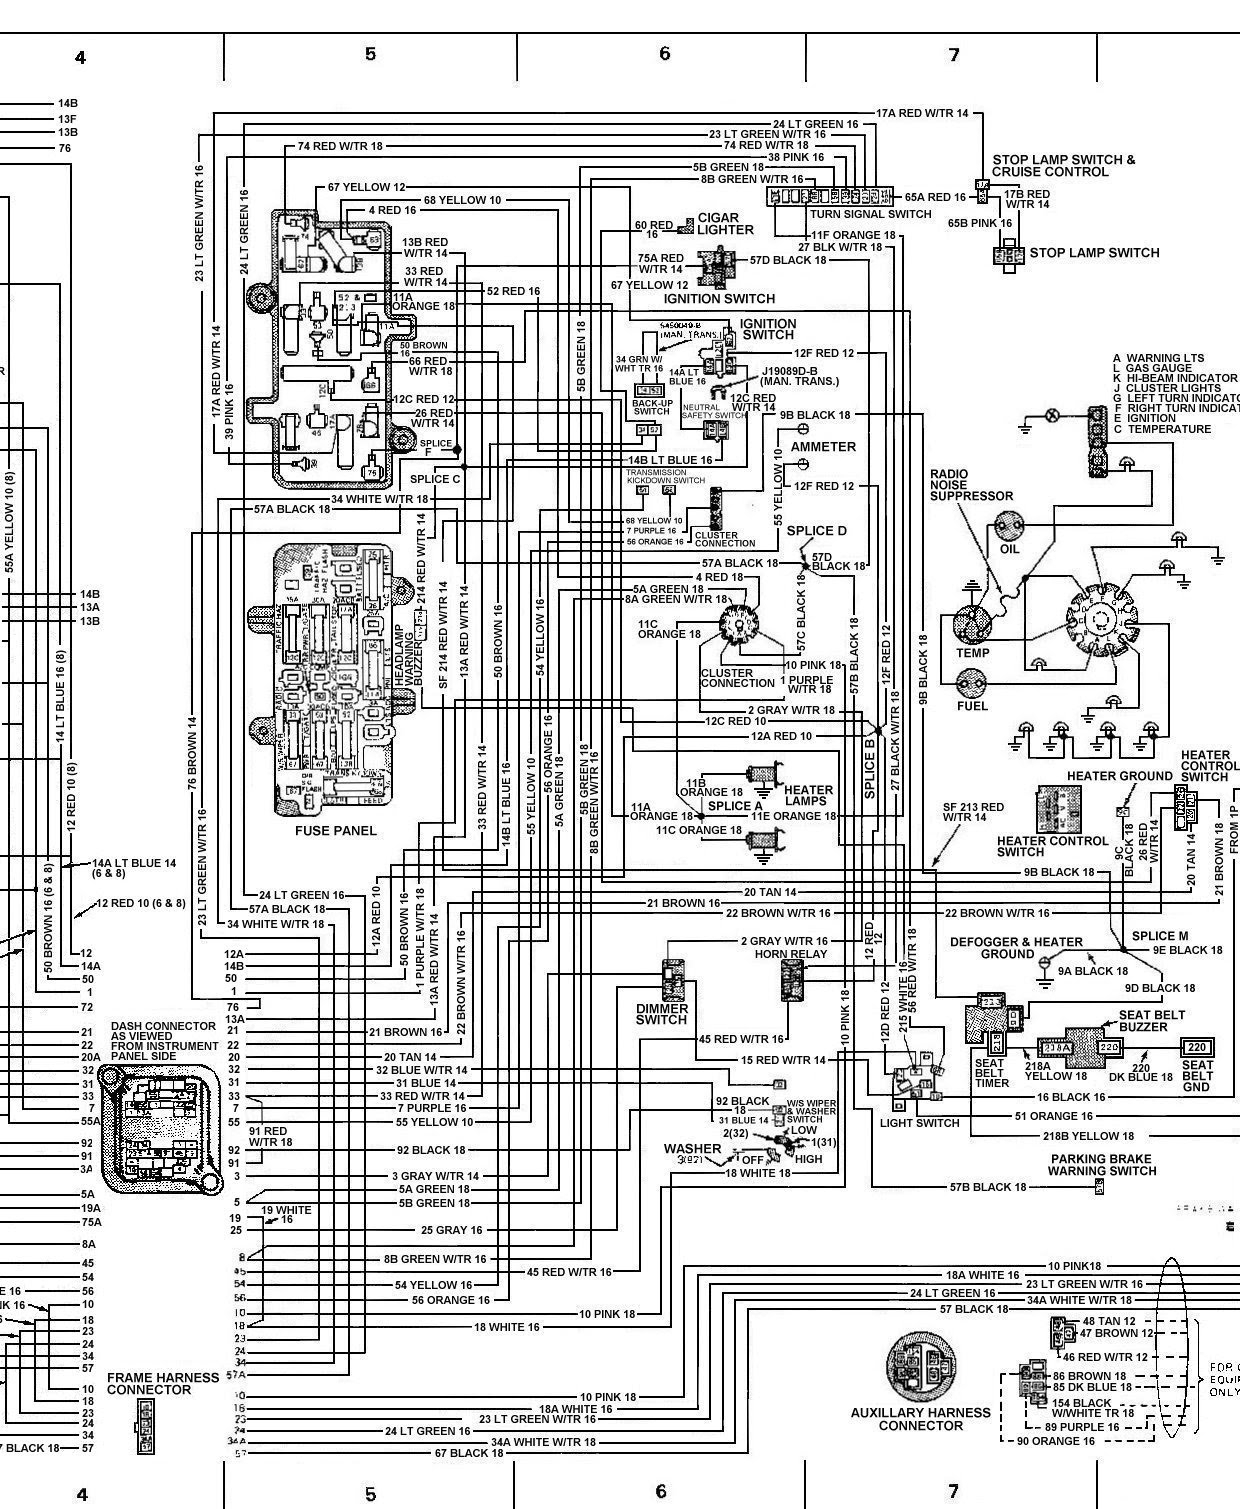 Diagram Jeep Grand Cherokee Parts Diagram Intended For Jeep Grand Cherokee Parts Diagram additionally D Tl Starter Replacement Img furthermore Maxresdefault likewise Maxresdefault likewise Maxresdefault. on 03 honda accord starting system wiring diagram